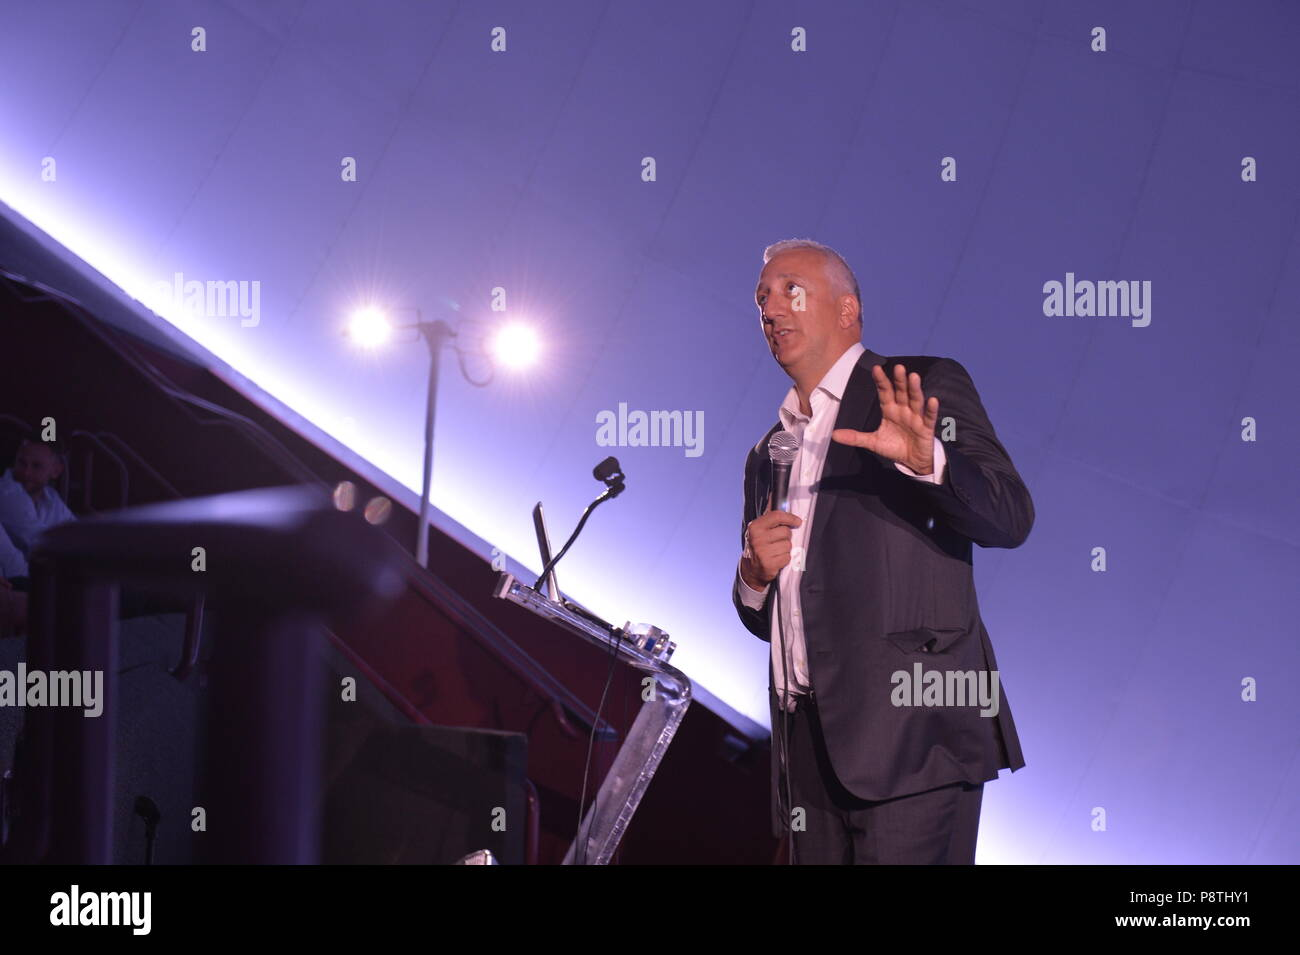 Garden City, New York, USA. June 21, 2018. Former NASA space shuttle astronaut MIKE MASSIMINO, a Long Island native, gestures as he stands at podium on stage during his free lecture in the JetBlue Sky Theater Planetarium at the Cradle of Aviation Museum. Stock Photo